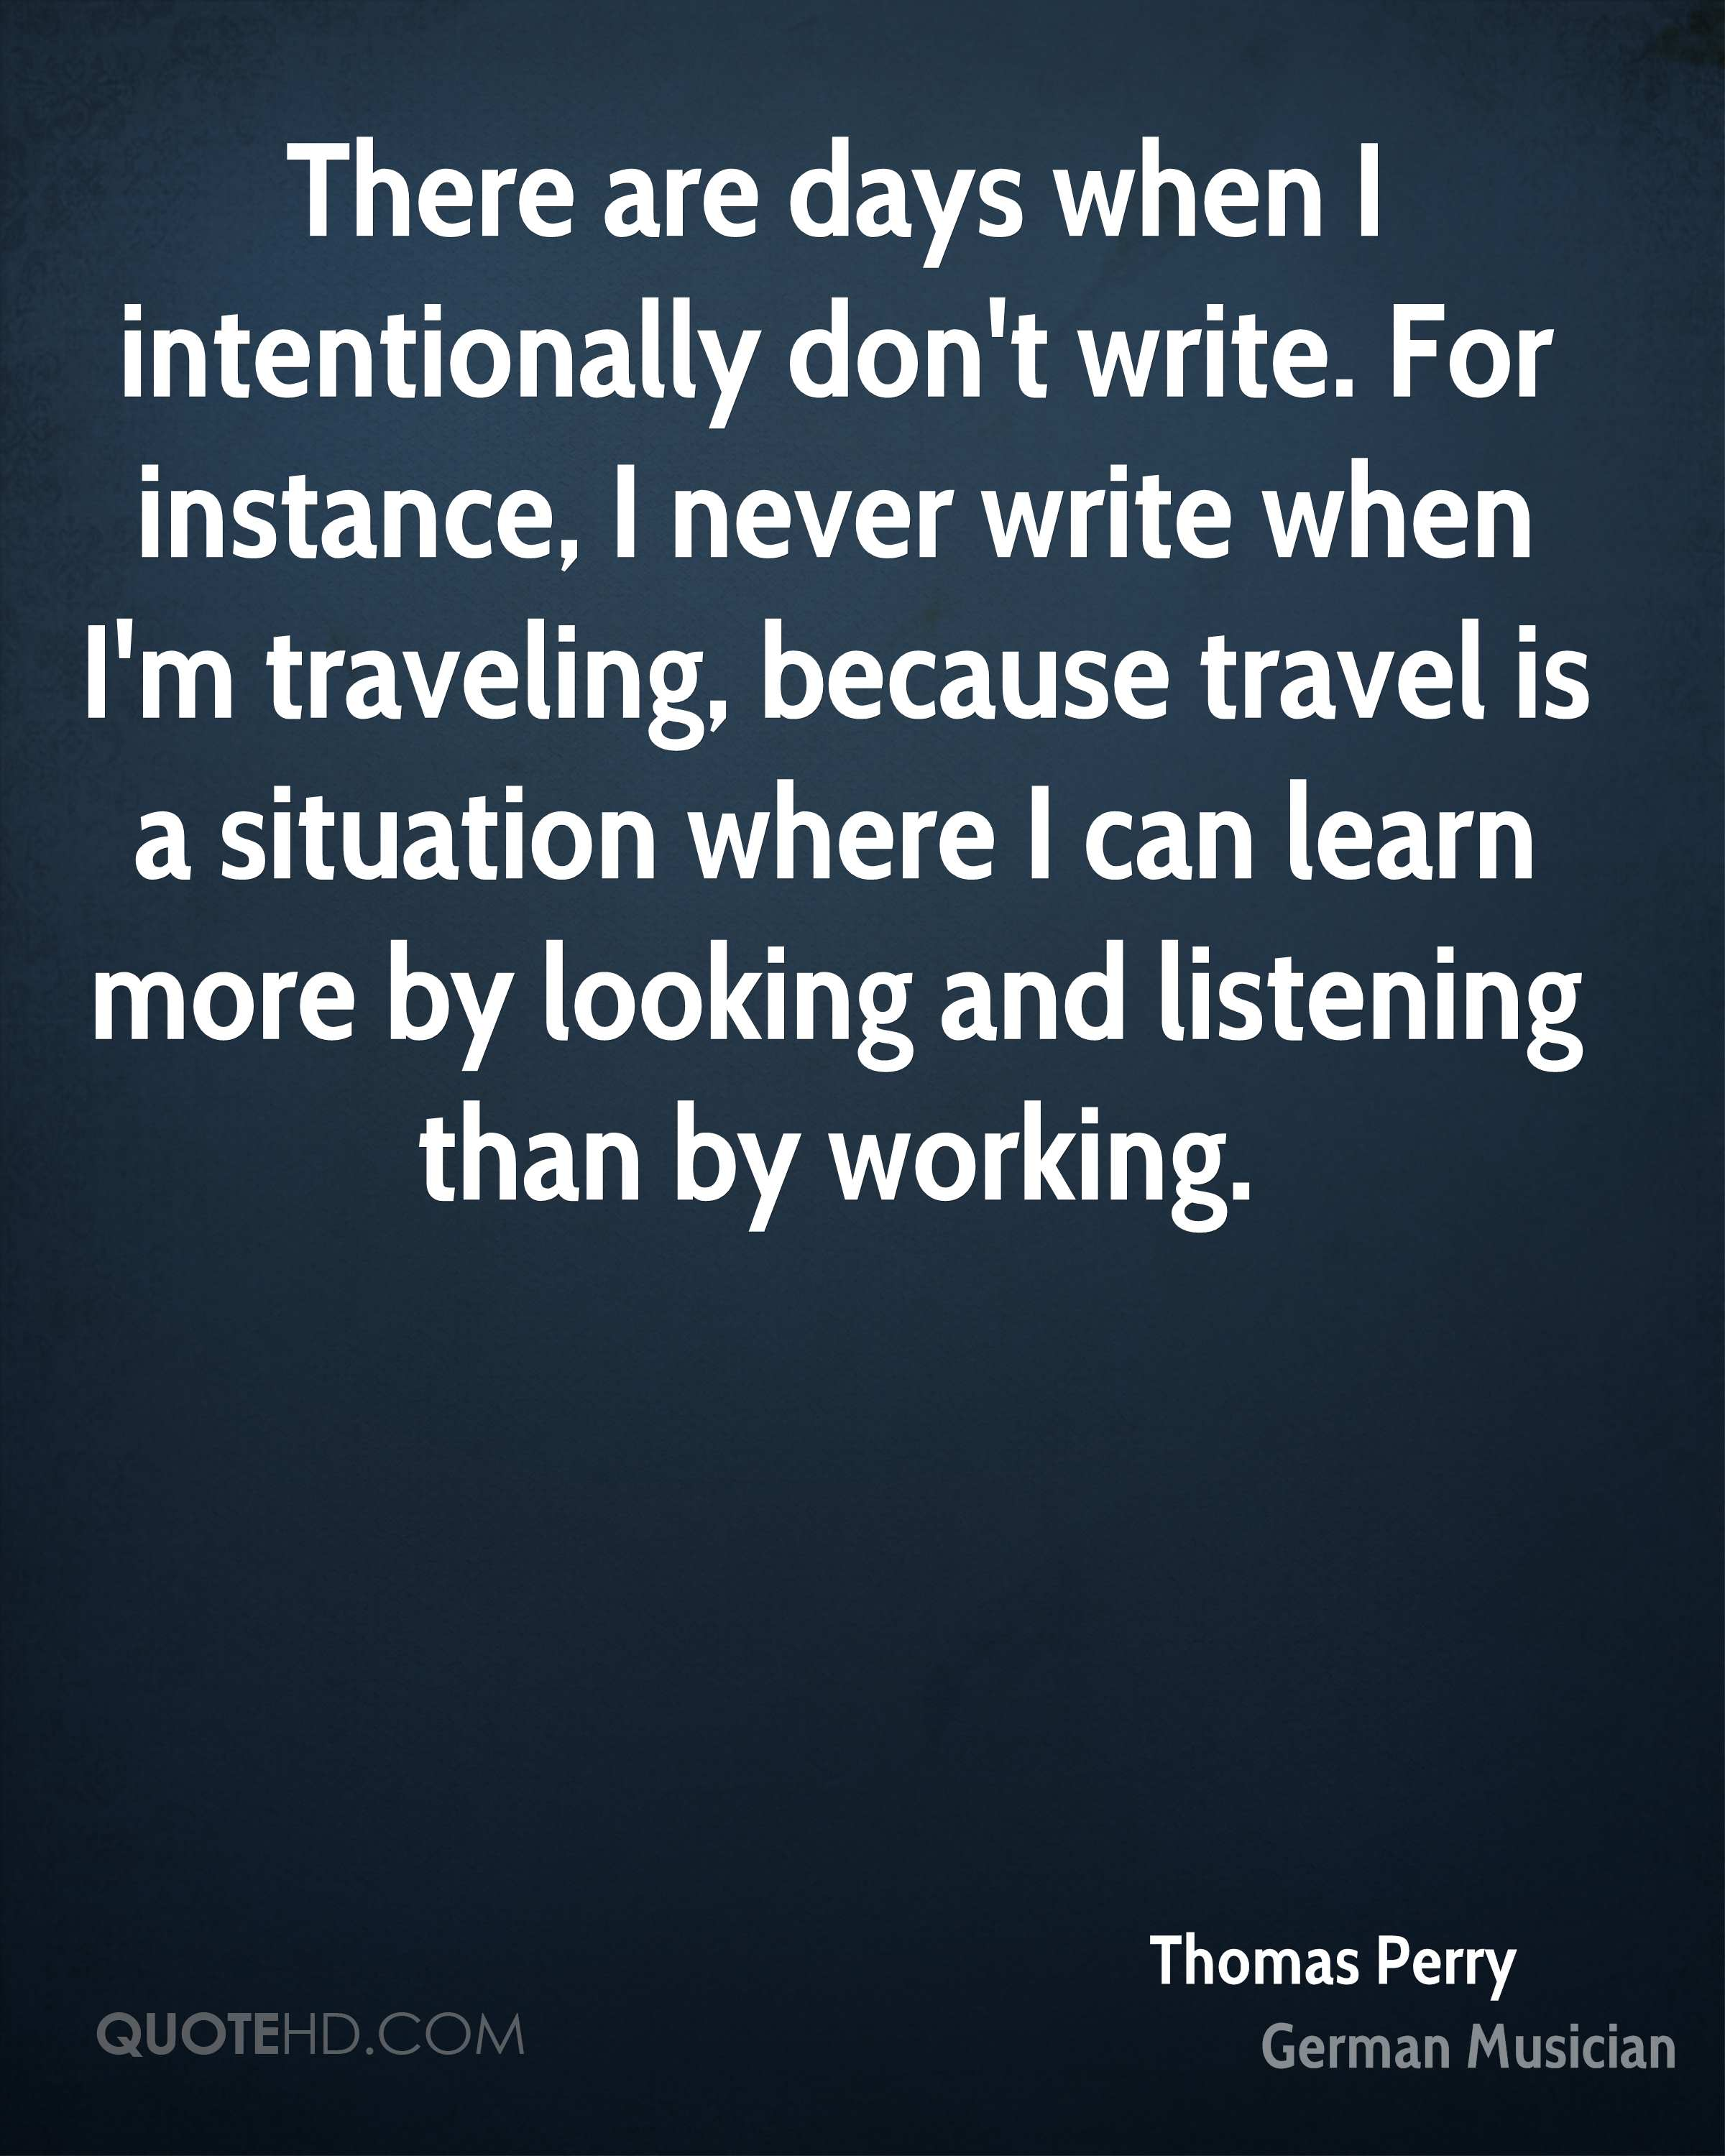 There are days when I intentionally don't write. For instance, I never write when I'm traveling, because travel is a situation where I can learn more by looking and listening than by working.